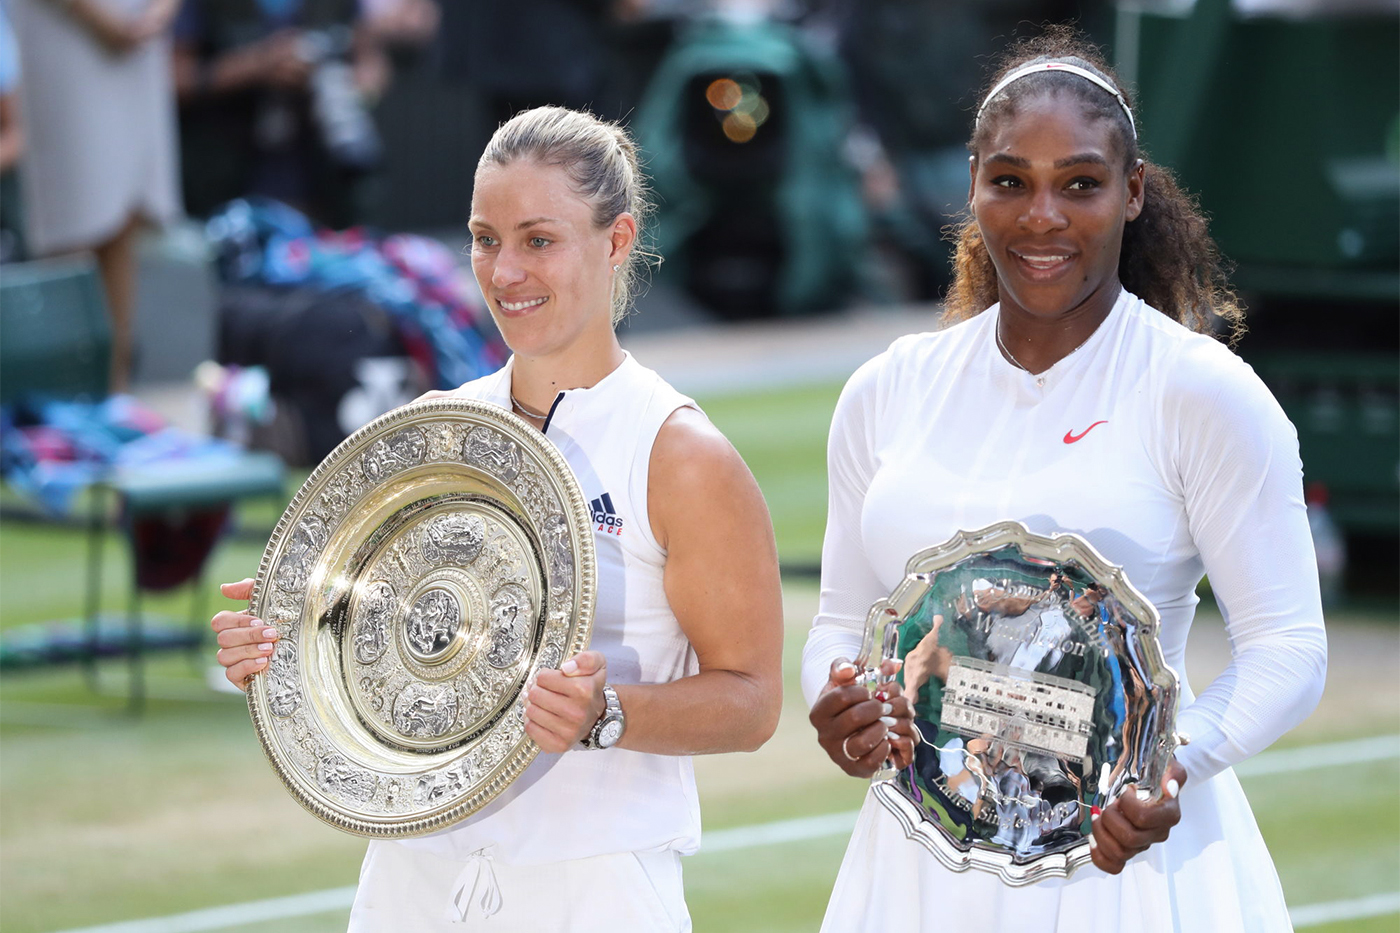 Angelique Kerber GER v Serena Williams USA in the final of the Ladies' Singles on Centre Court. The Championships 2018. Held at The All England Lawn Tennis Club, Wimbledon. Day 12 Saturday 14/07/2018. Credit: AELTC/Simon Bruty